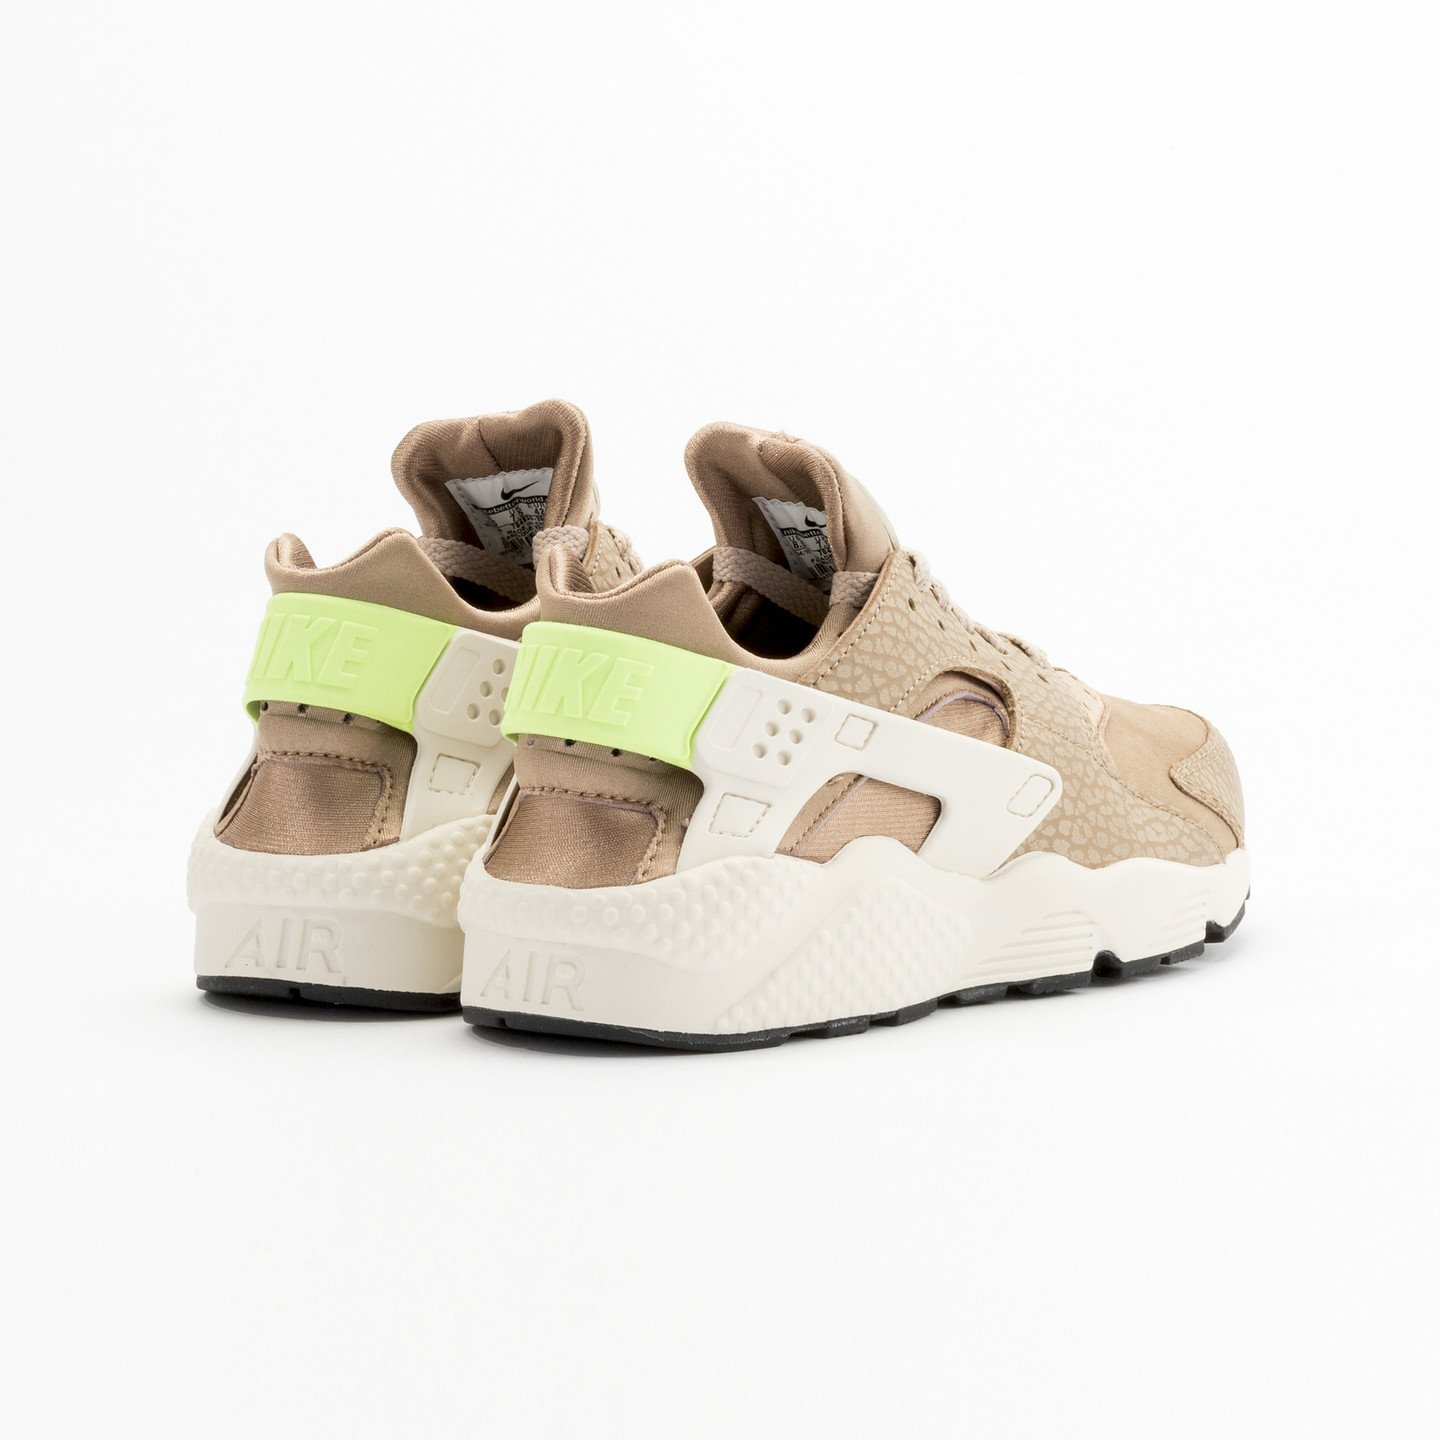 Nike Air Huarache Run Premium Desert Camo / Sea Glass / Ghost Green 704830-203-42